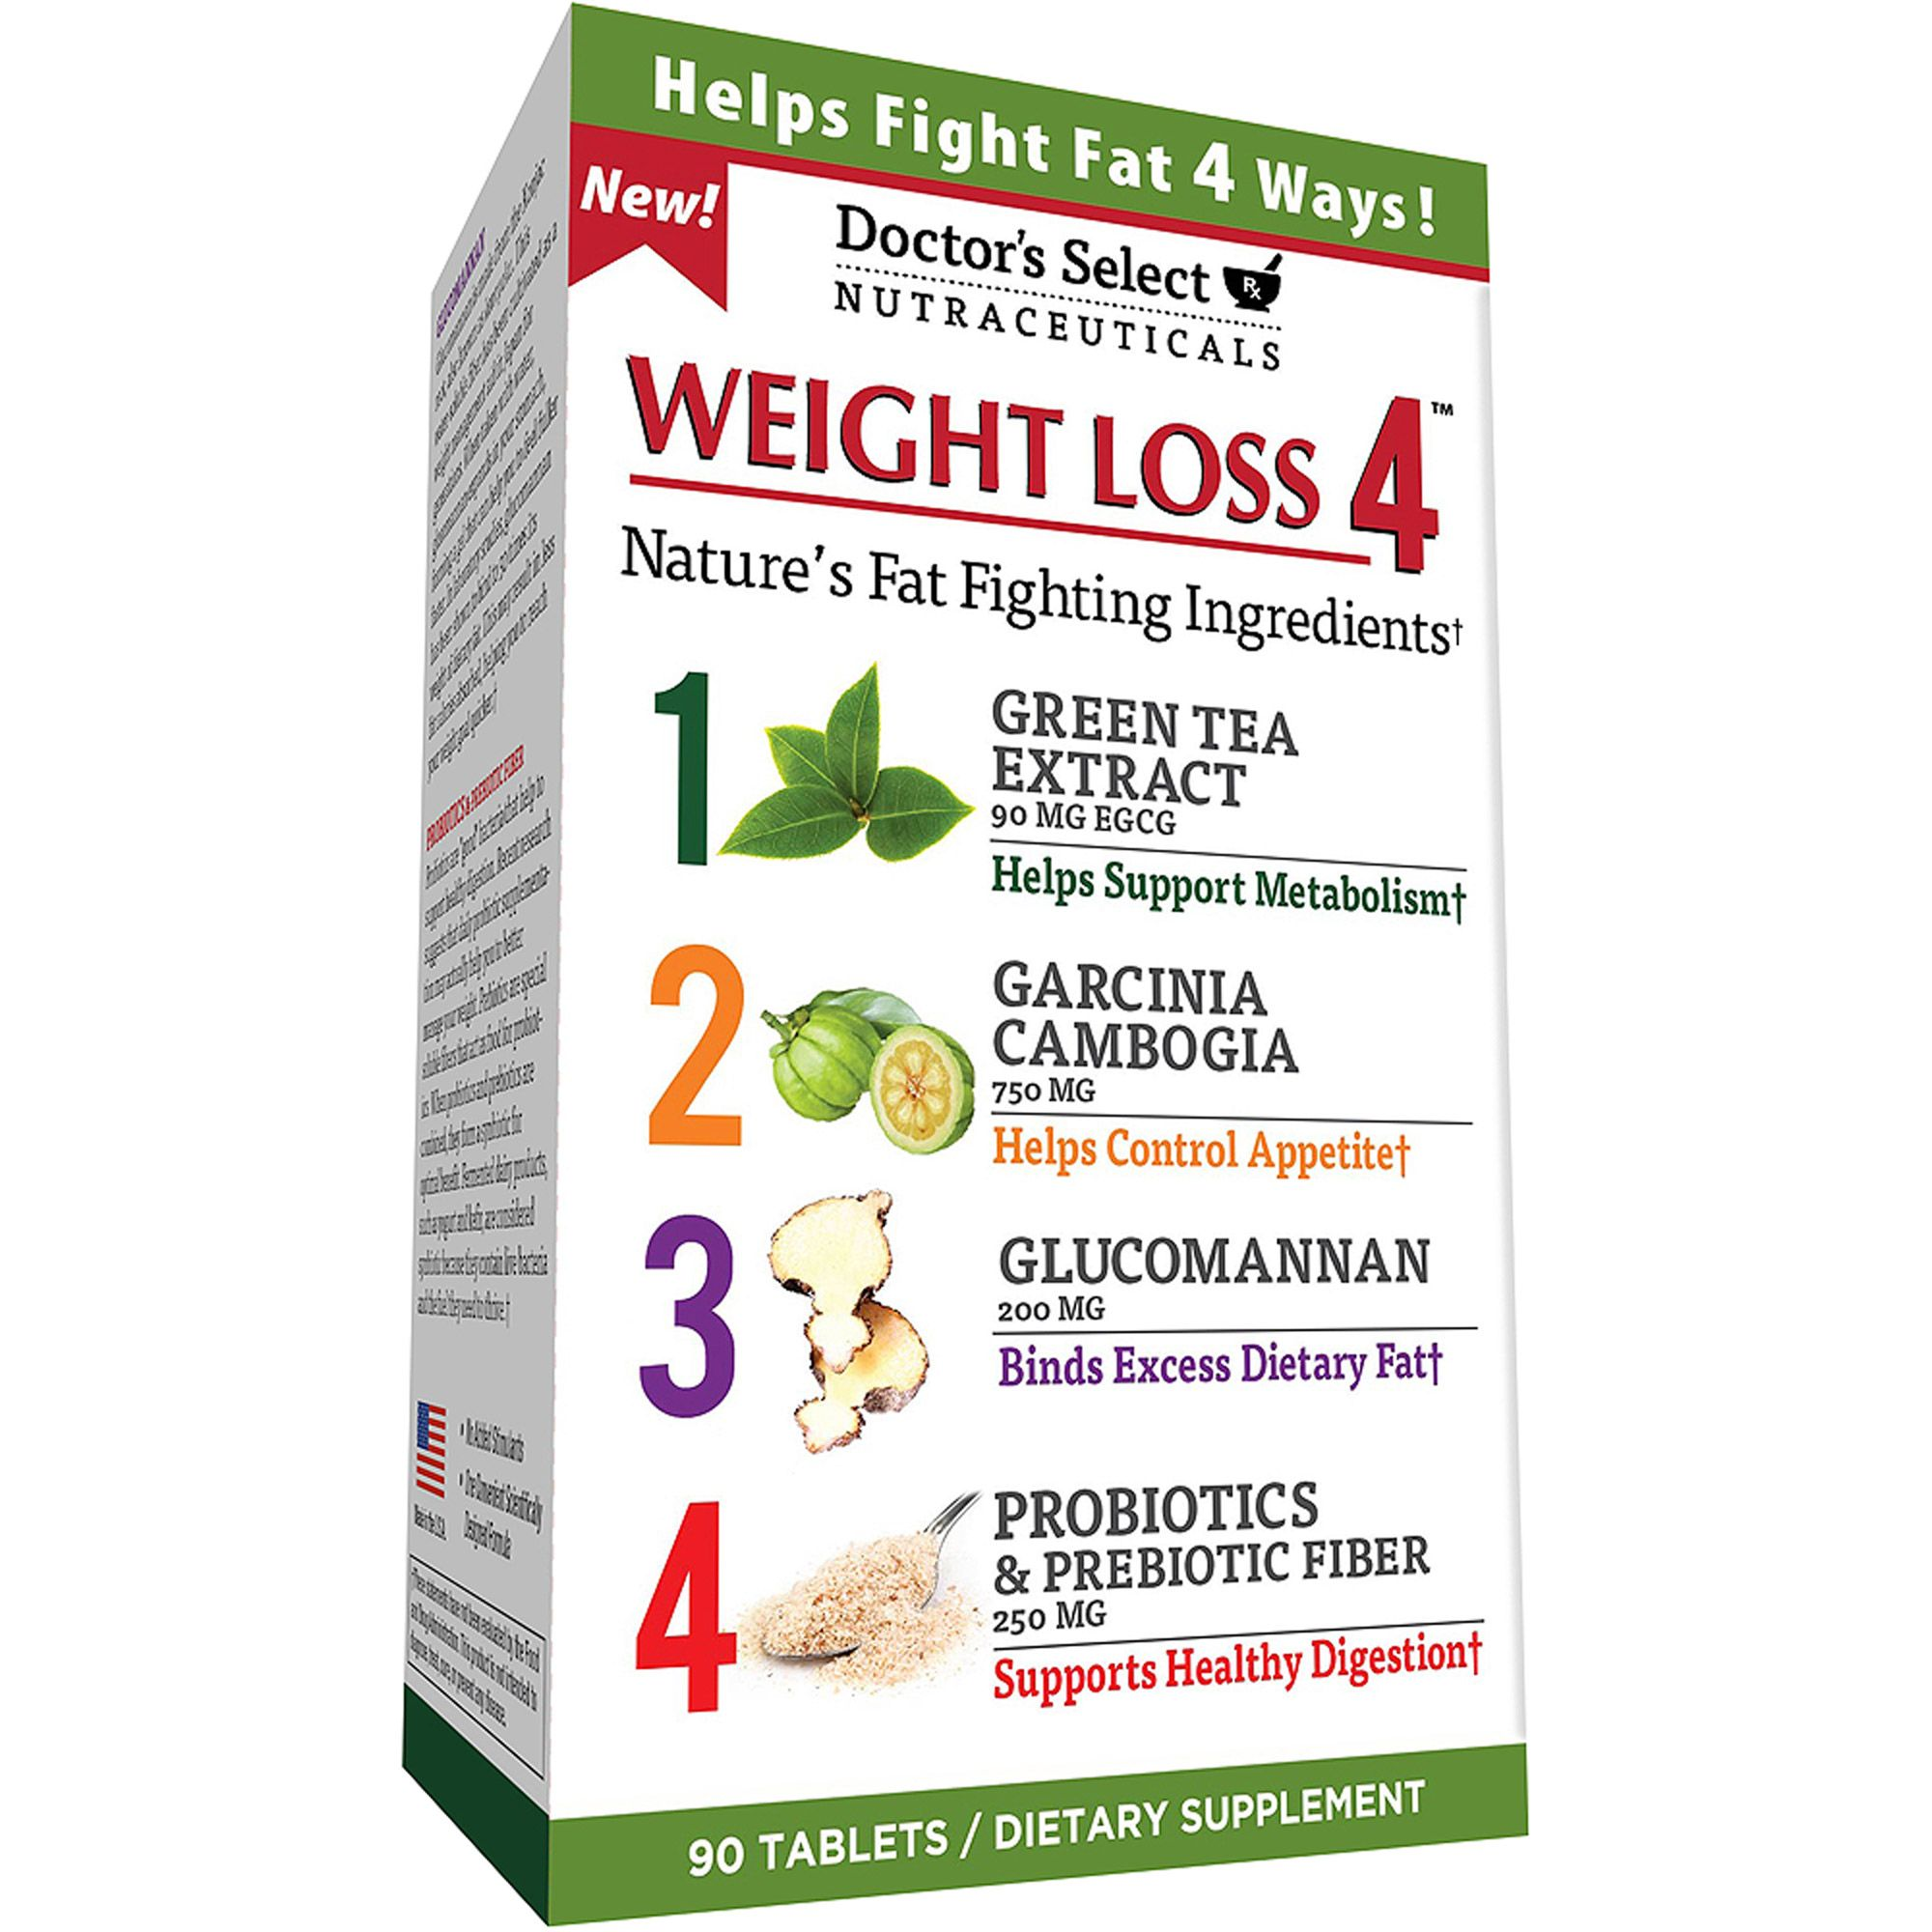 How to lose weight 4 steps